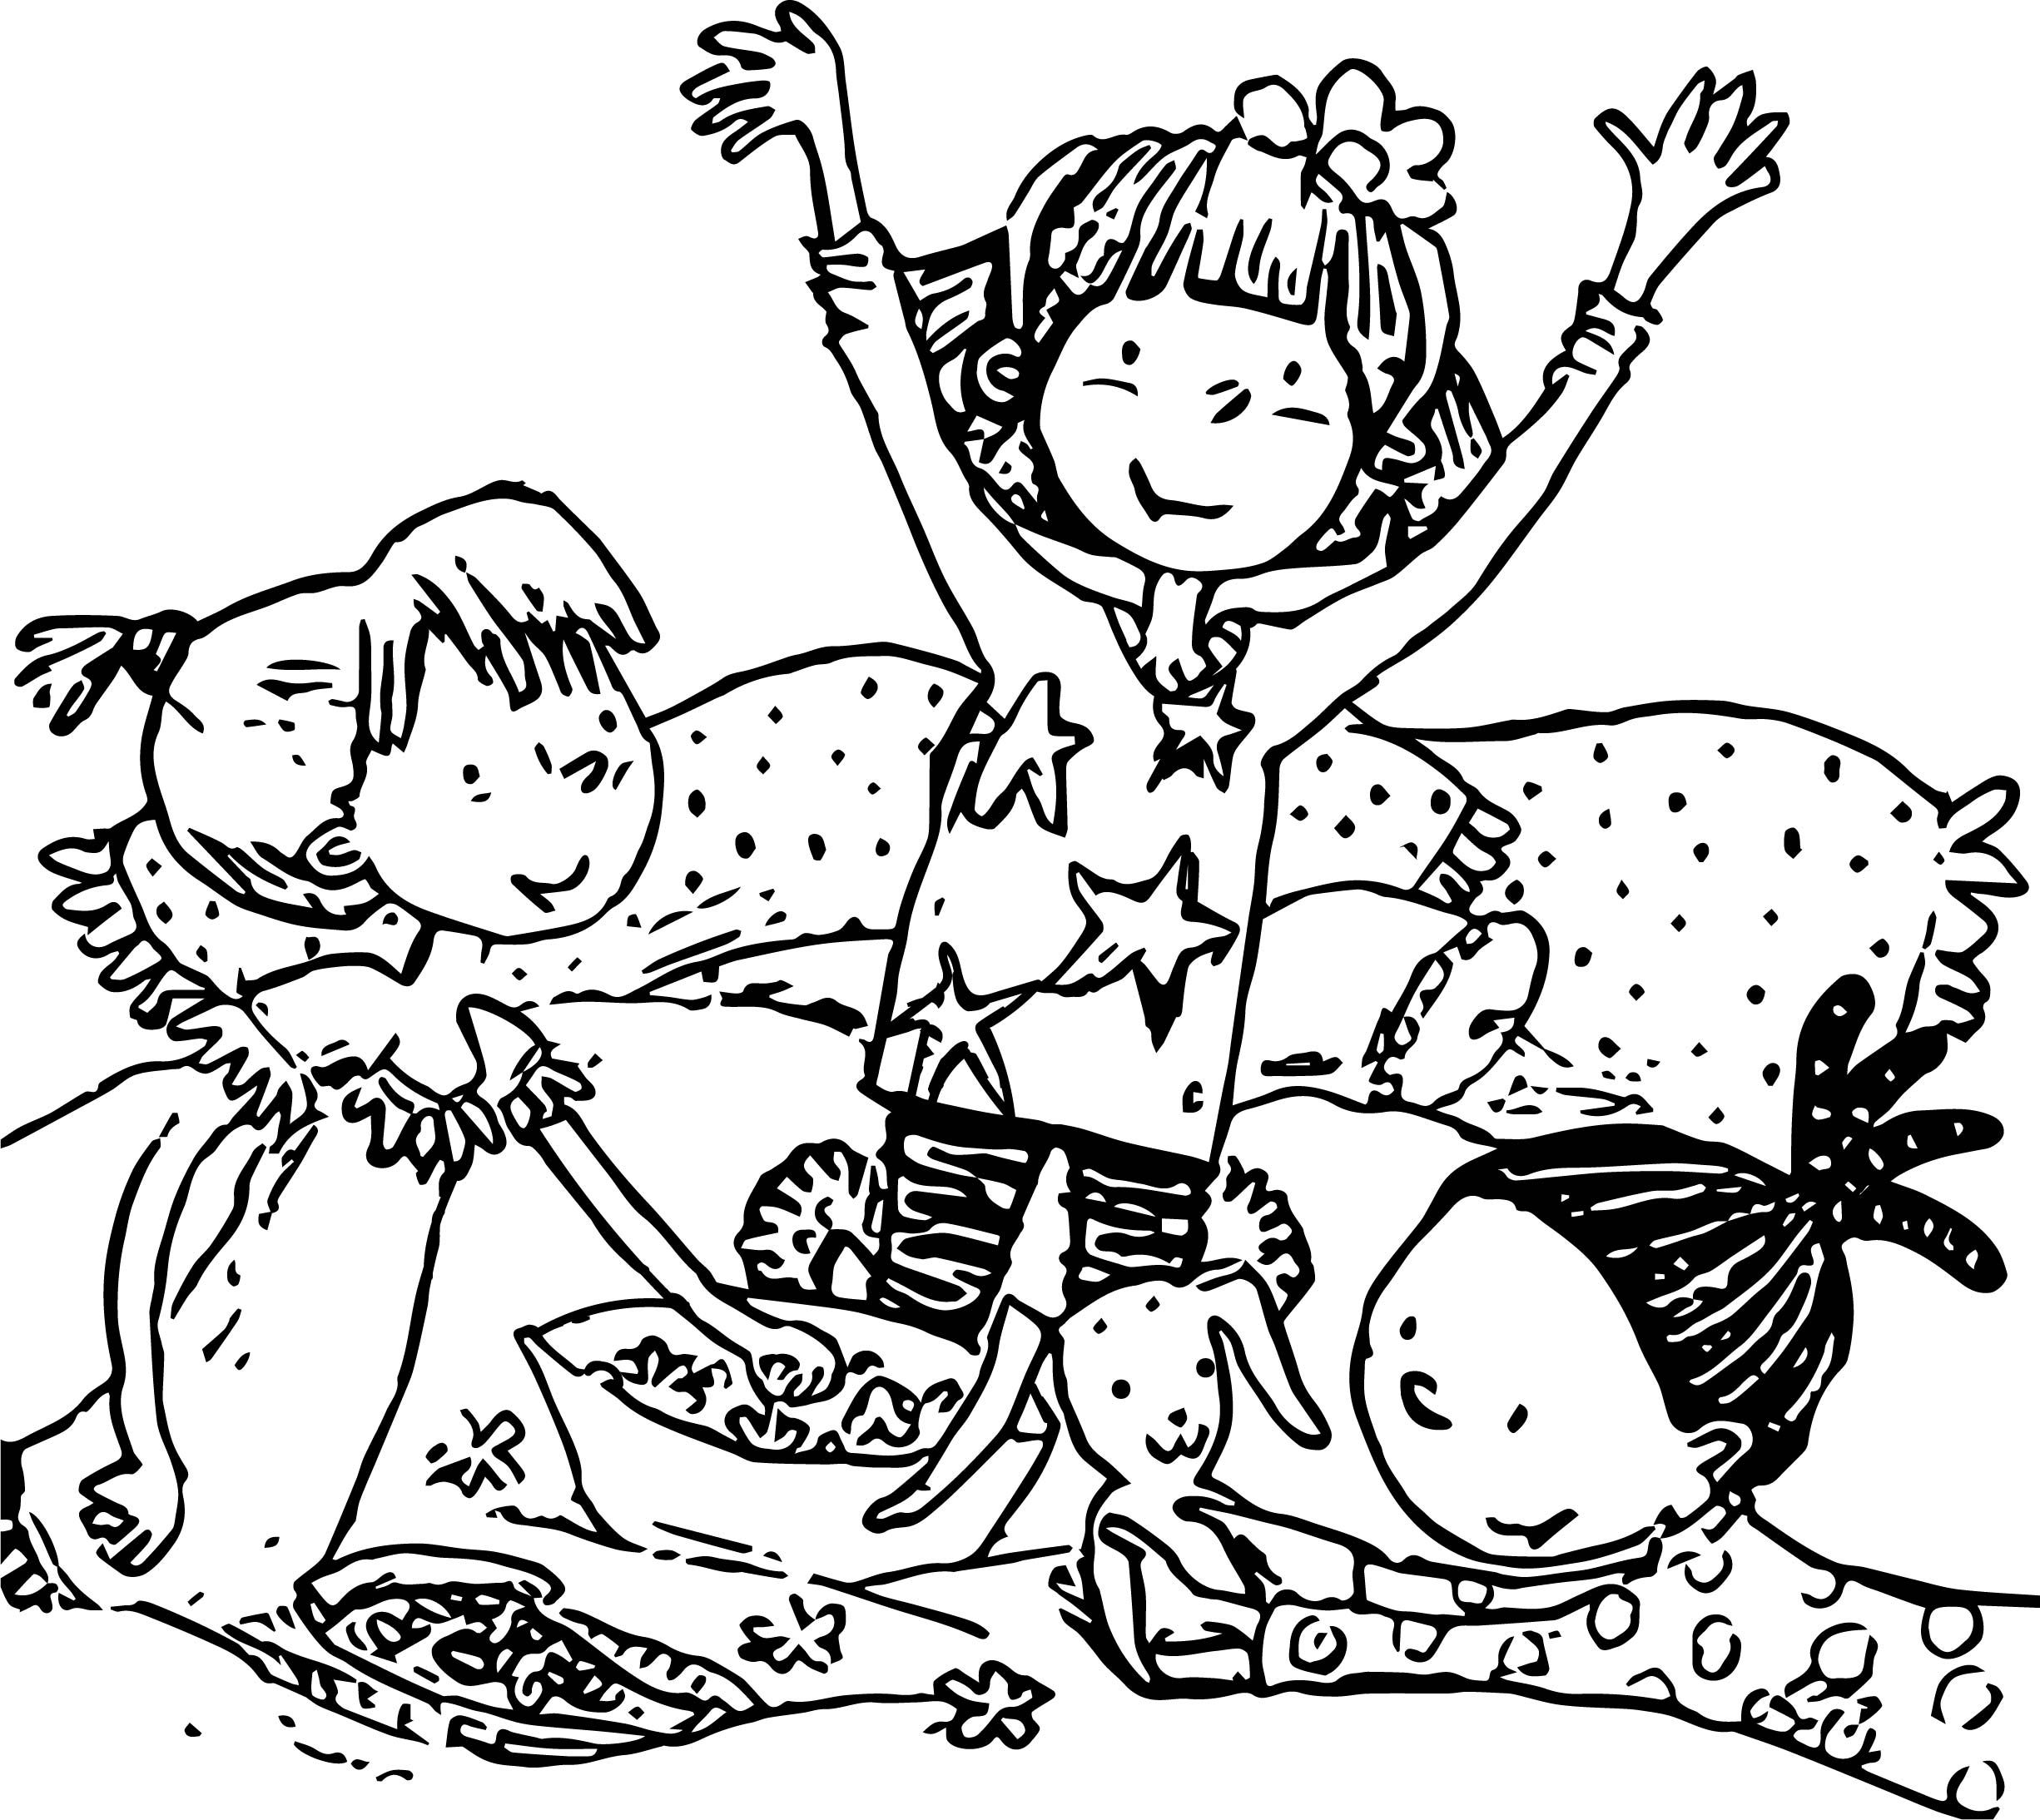 Nice Amelia Bedelia With Friends Coloring Page Coloring Pages Coloring Pages For Boys Amelia Bedelia